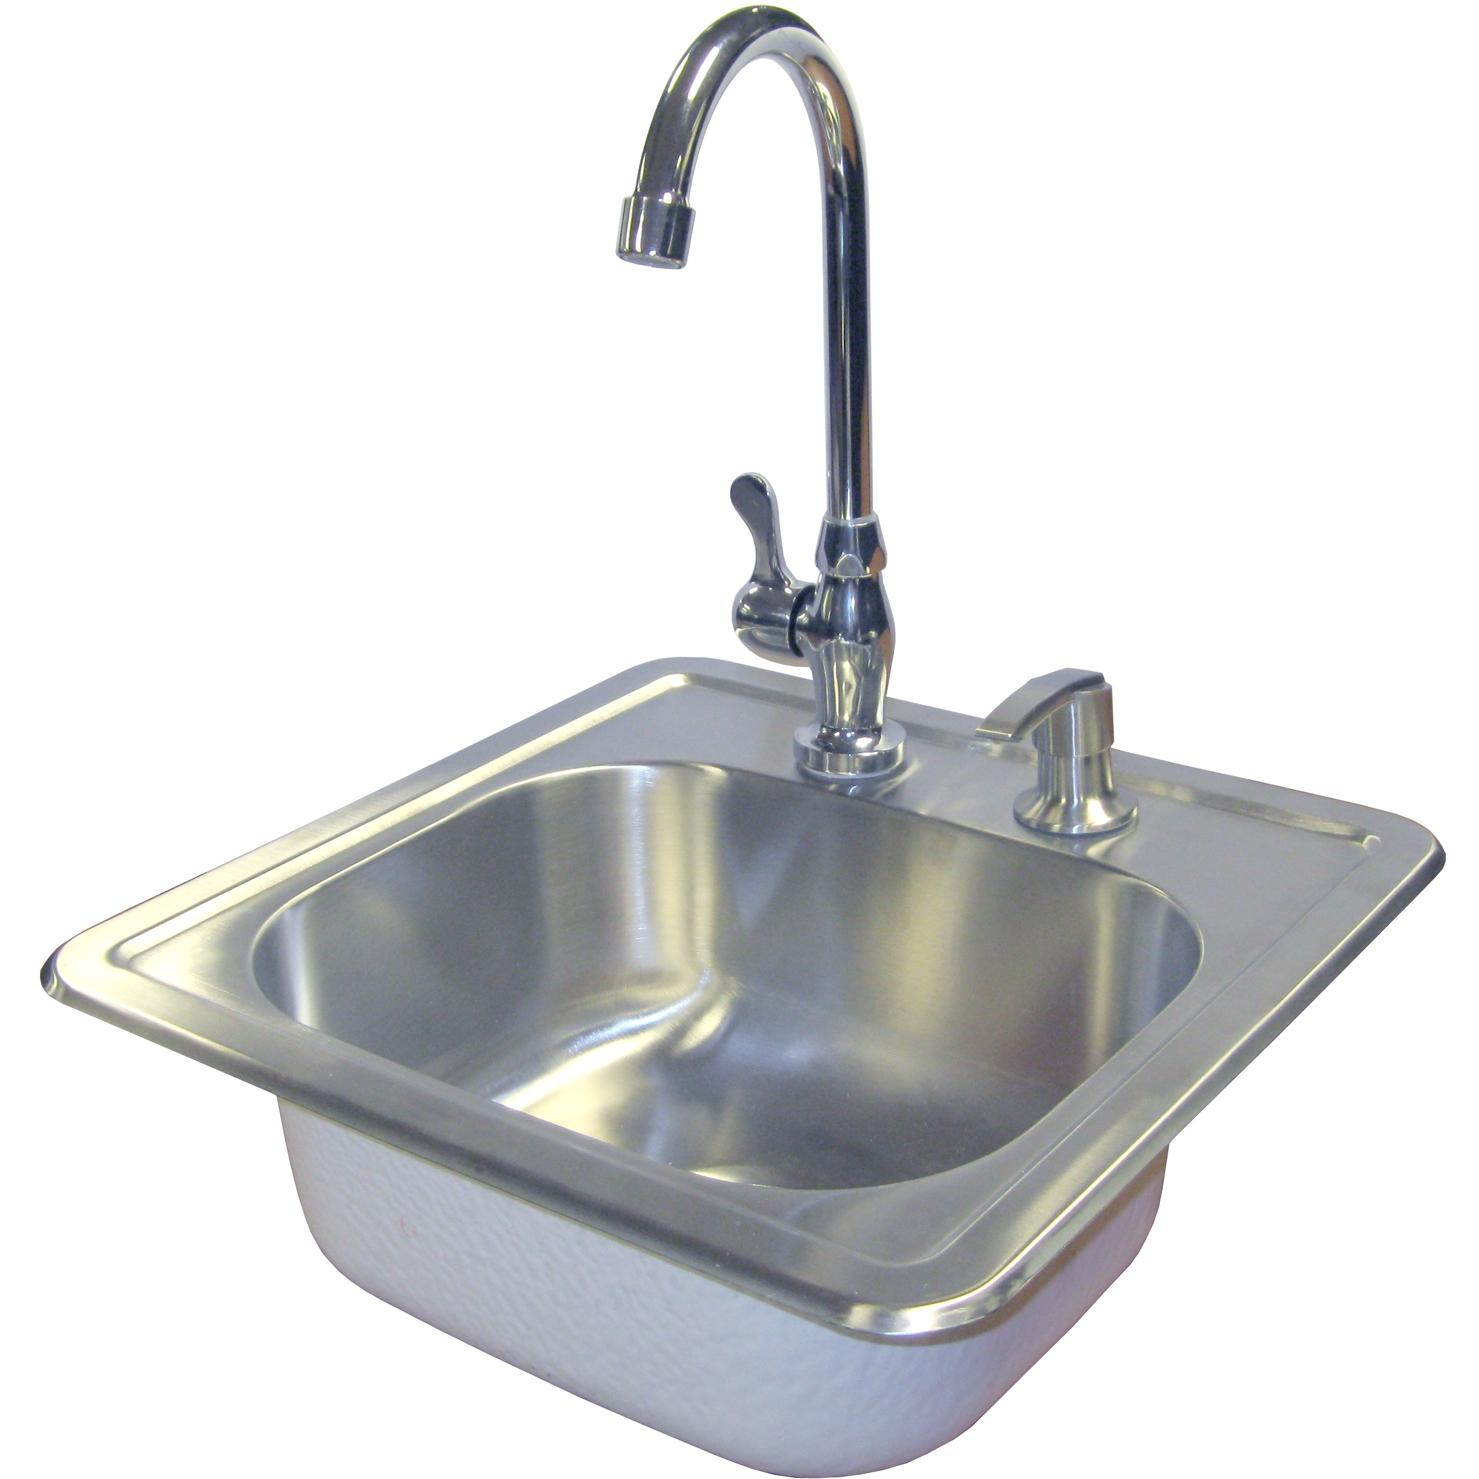 Picture of Cal Flame Stainless Steel Sink With Faucet And Soap Dispenser - BBQ11963